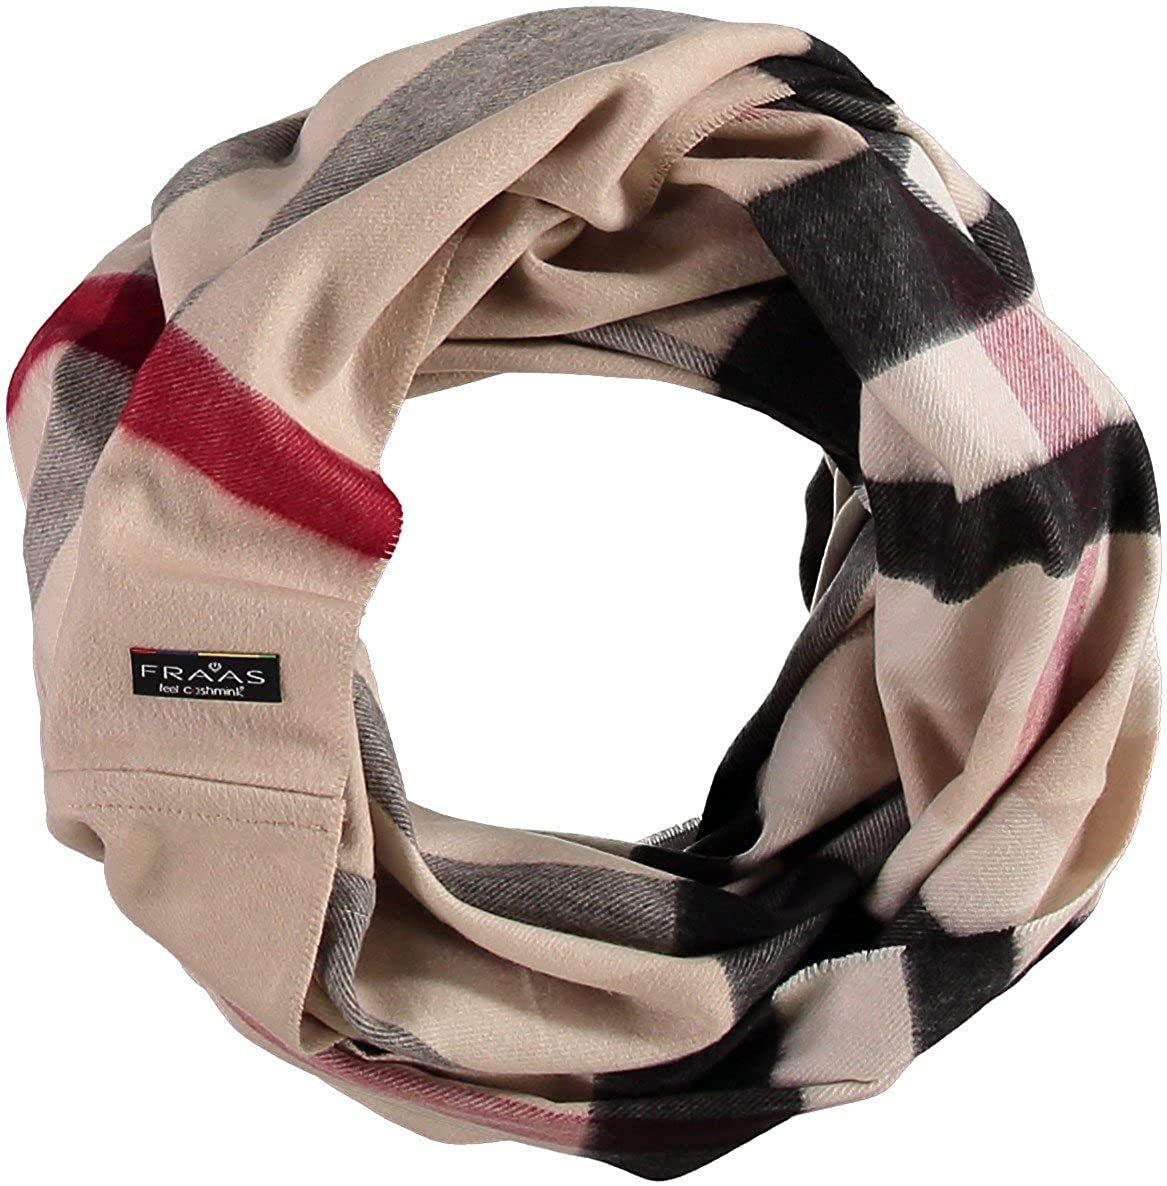 FRAAS Damen Schal 625000 FRAAS Damen Schal SNOOD Gr. One size Beige (Beige 170)